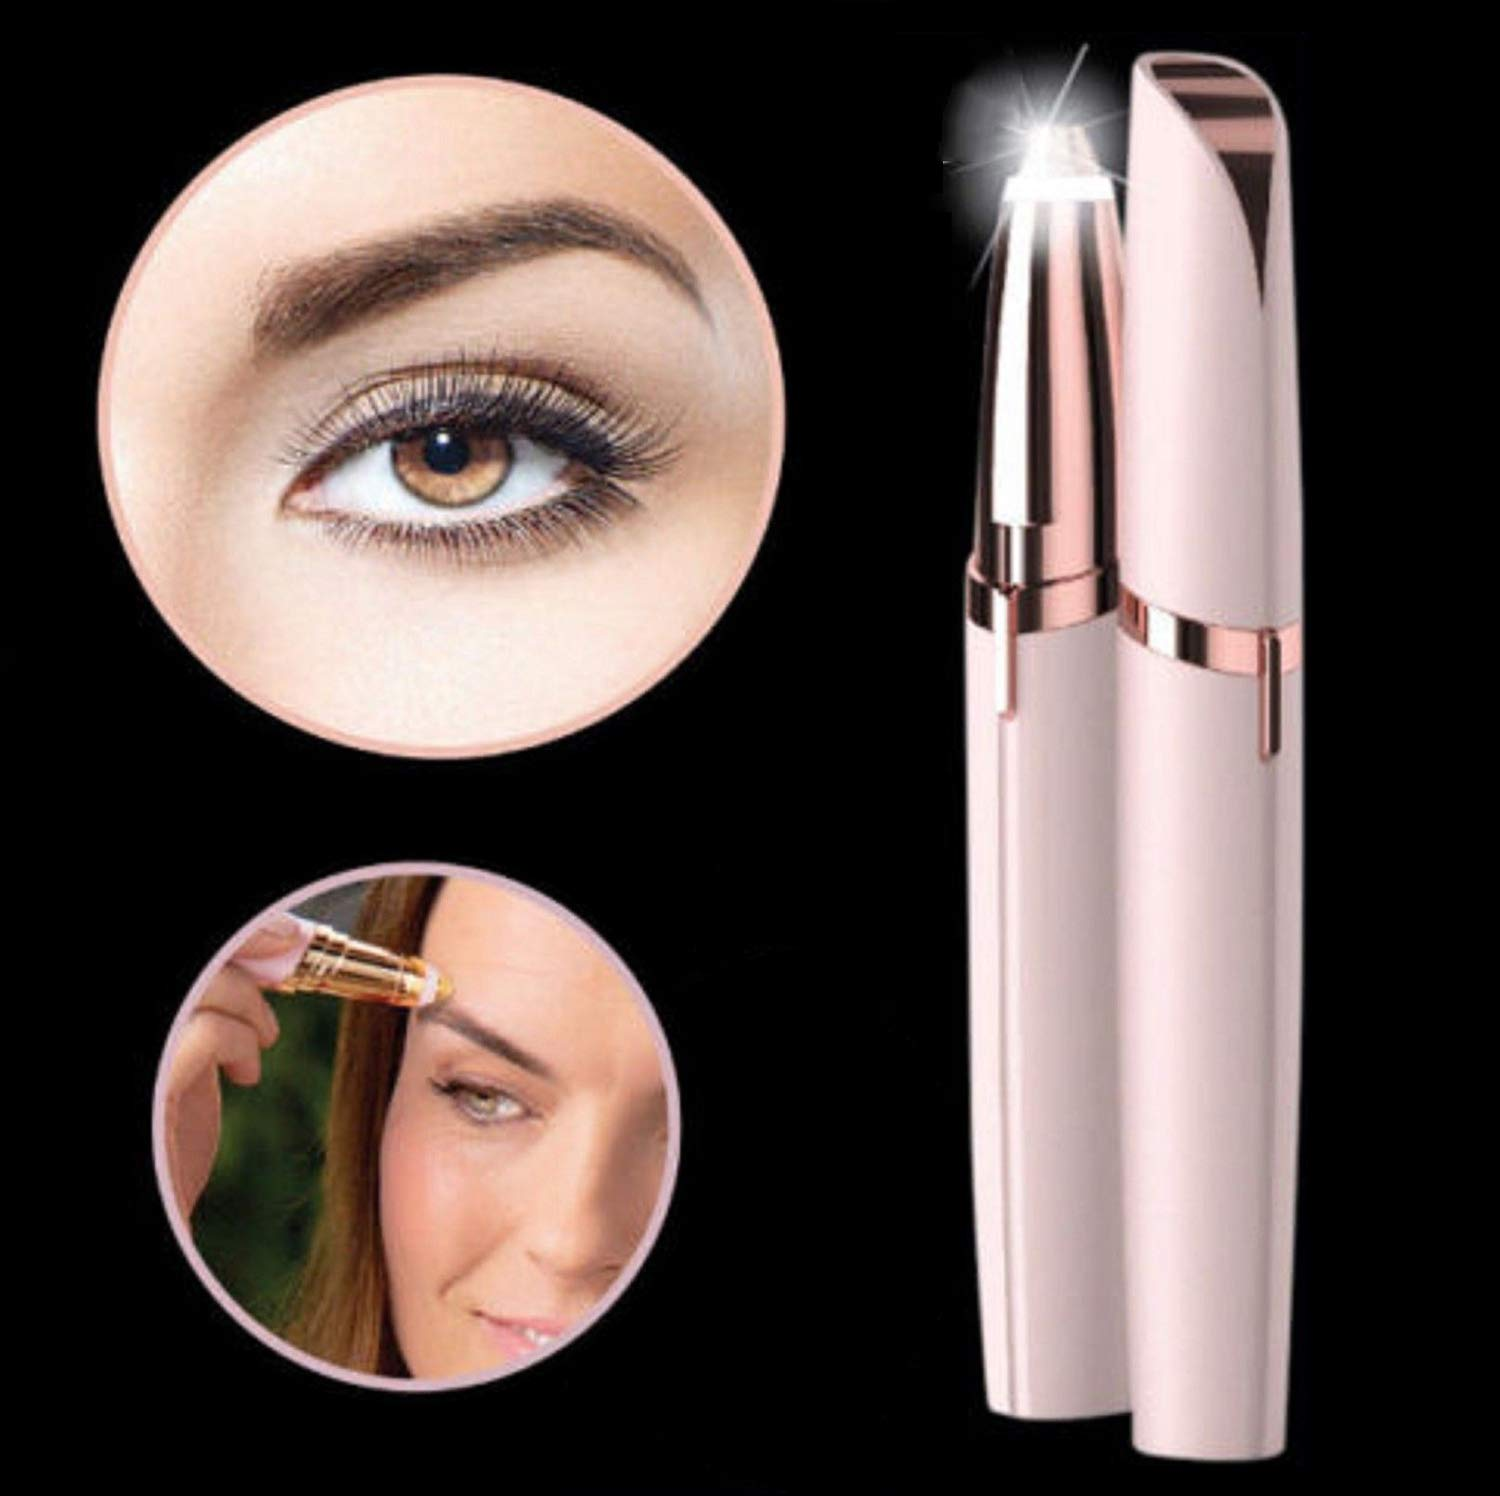 Flawlessly Brow Hair Remover - Brows Best Eyebrow Trimmer Women Painless Hair Remover, Flawlessly Eyebrow Remover As Seen On TV by Life In Color (Image #1)